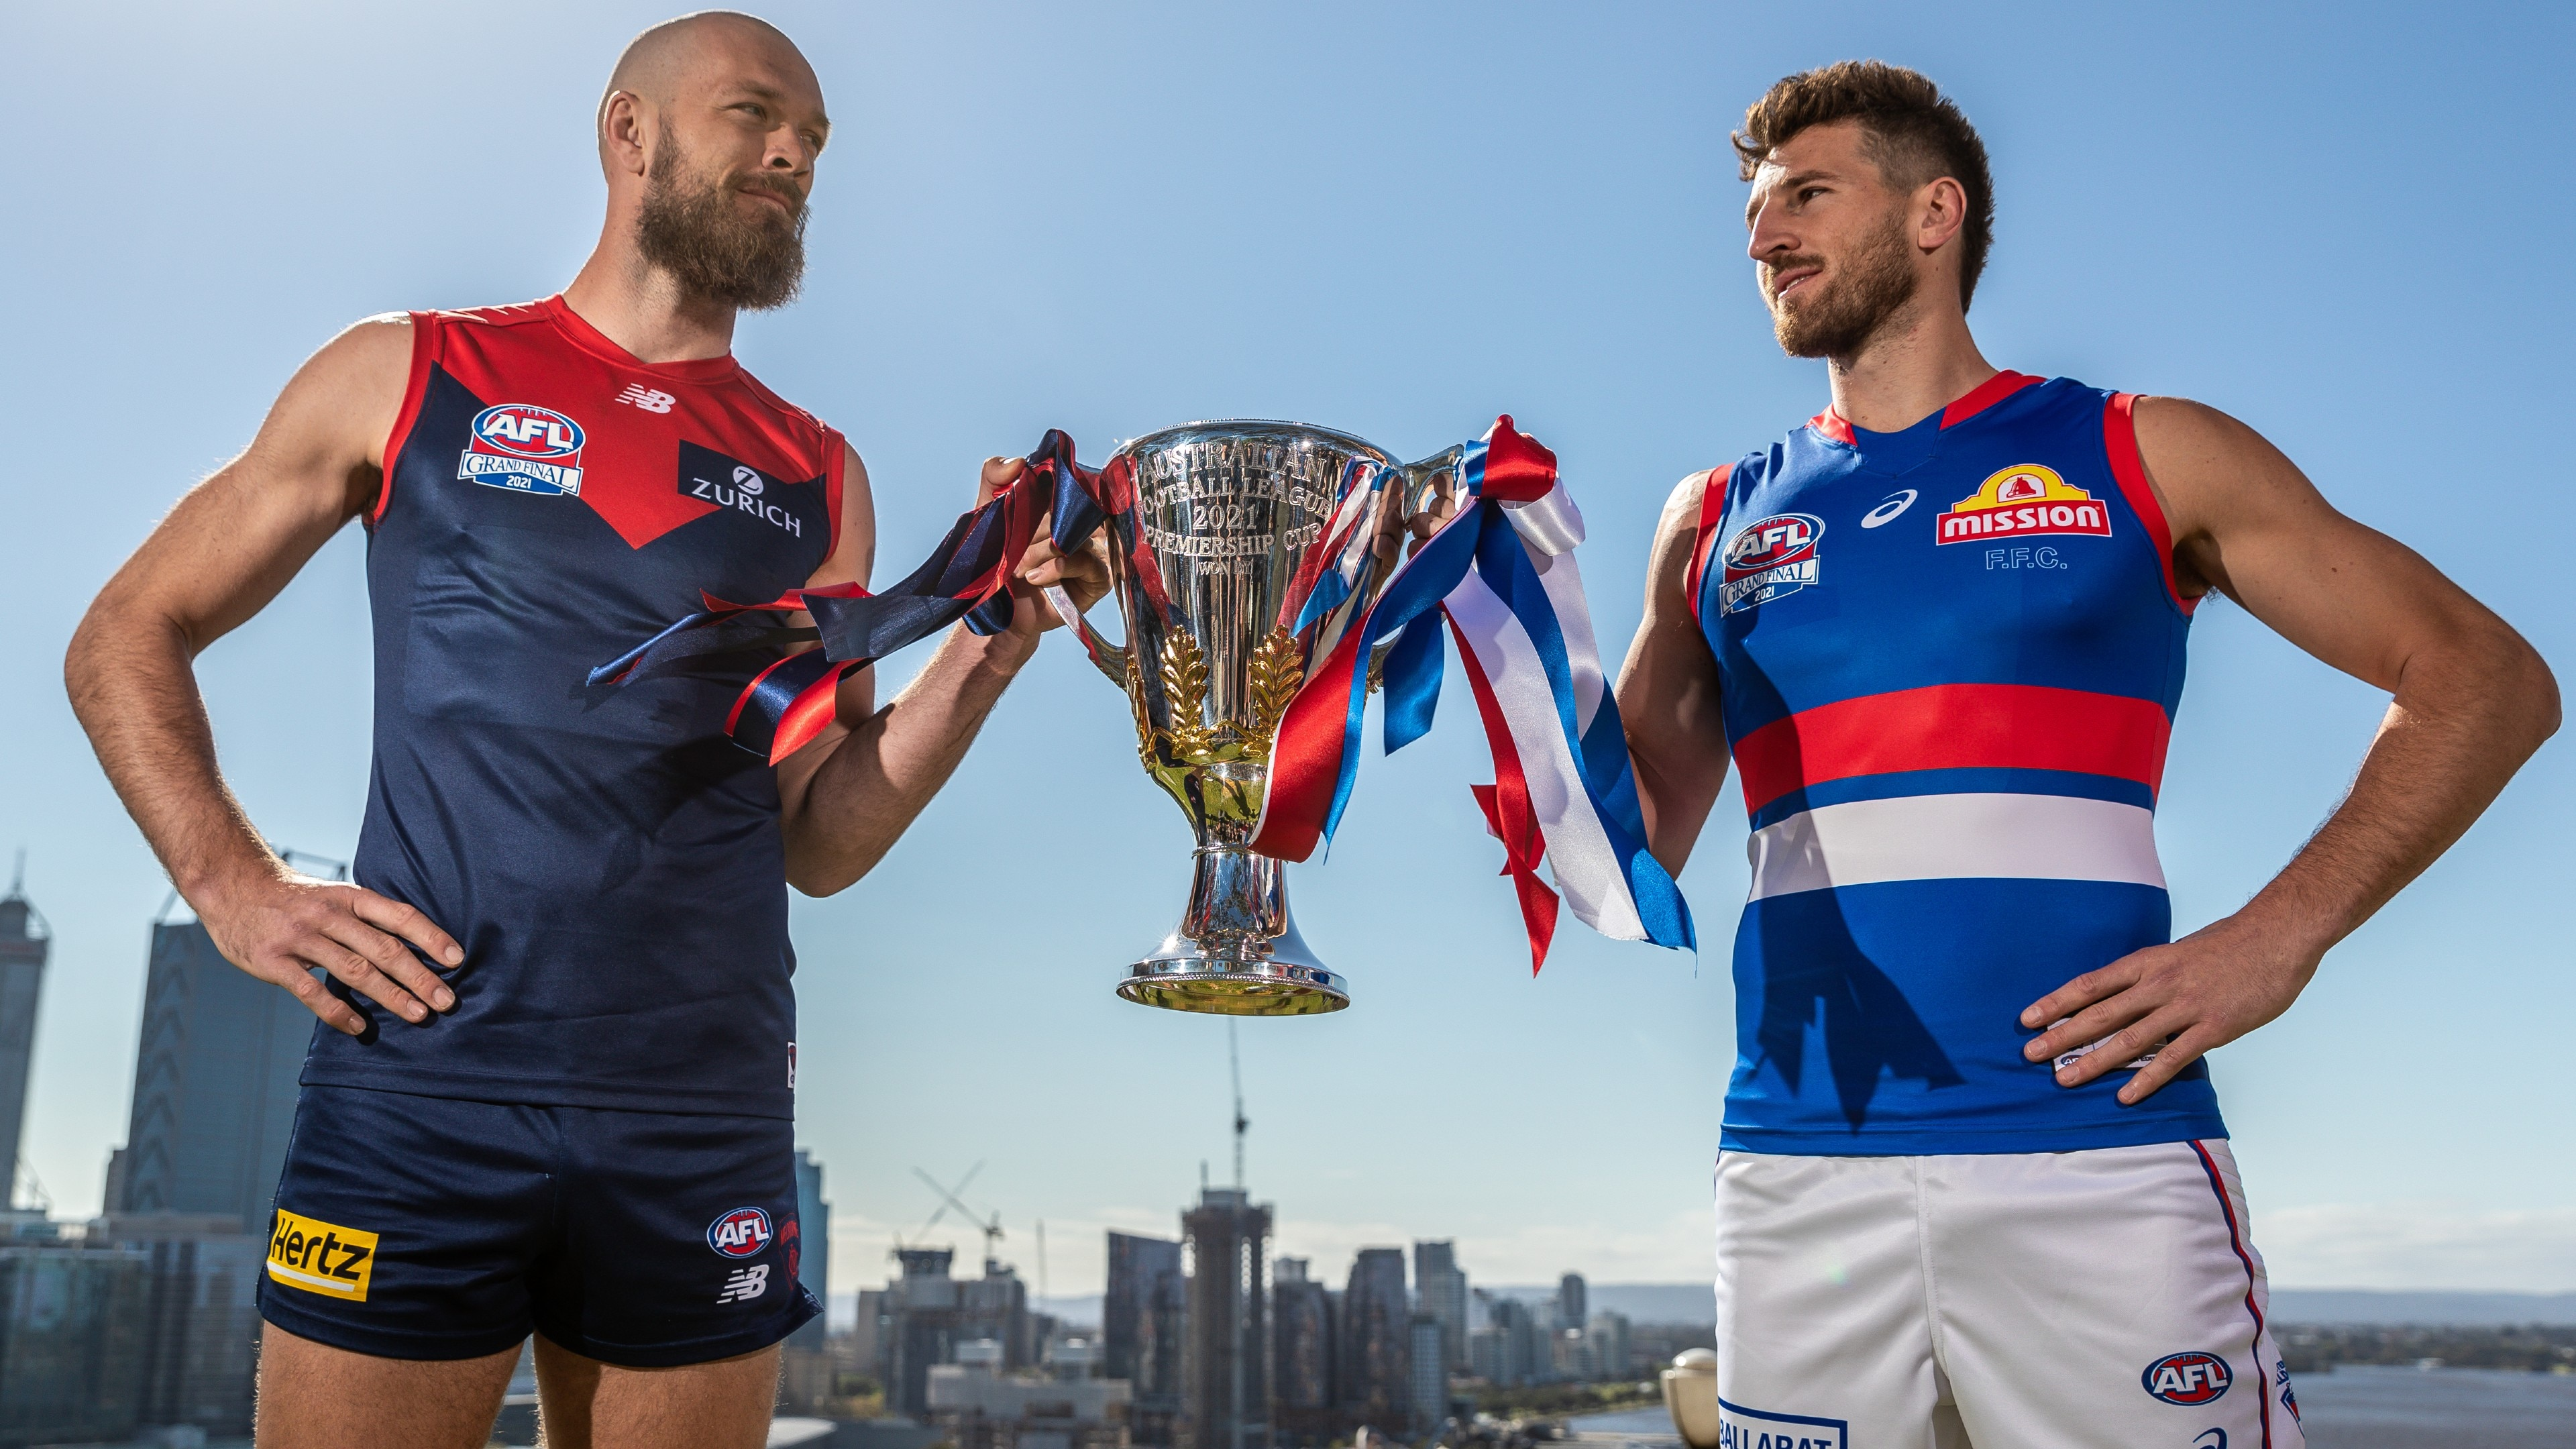 Max Gawn (L) captain of the Demons and Marcus Bontempelli, captain of the Bulldogs holding the 2021 AFL Premiership Cup after an AFL Grand